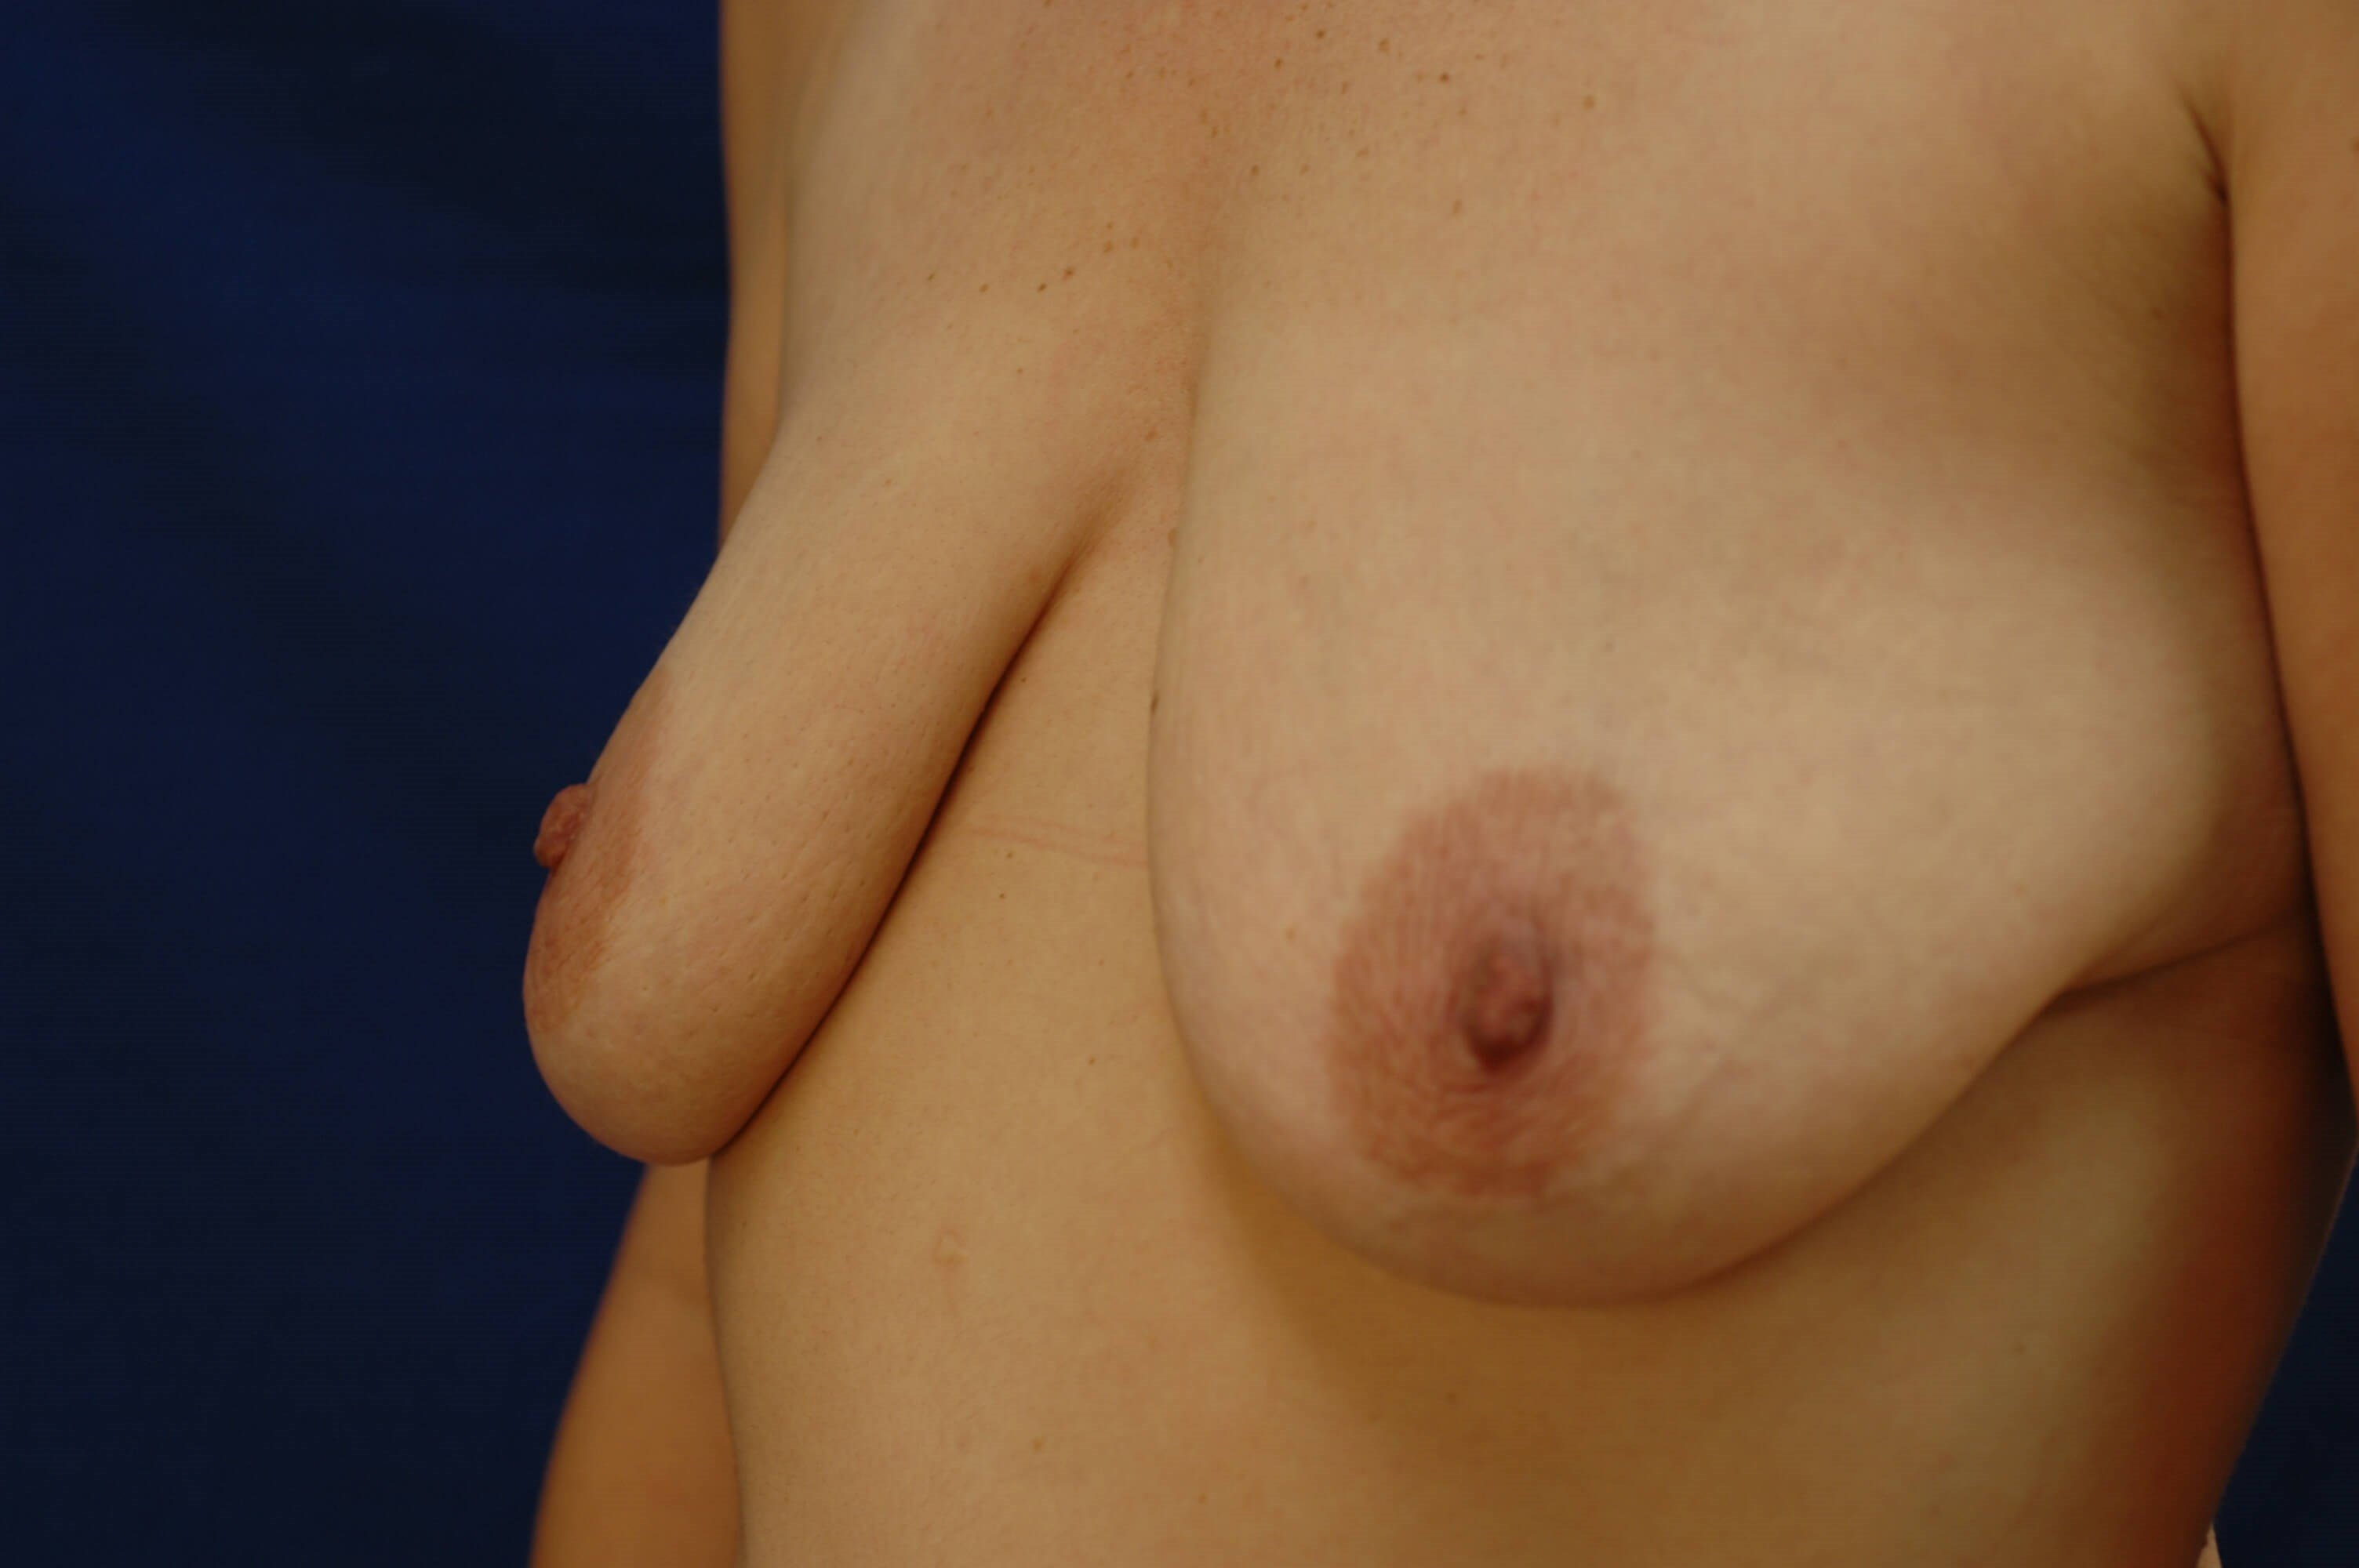 Newport Beach Breast Lift &Aug Oblique View Before